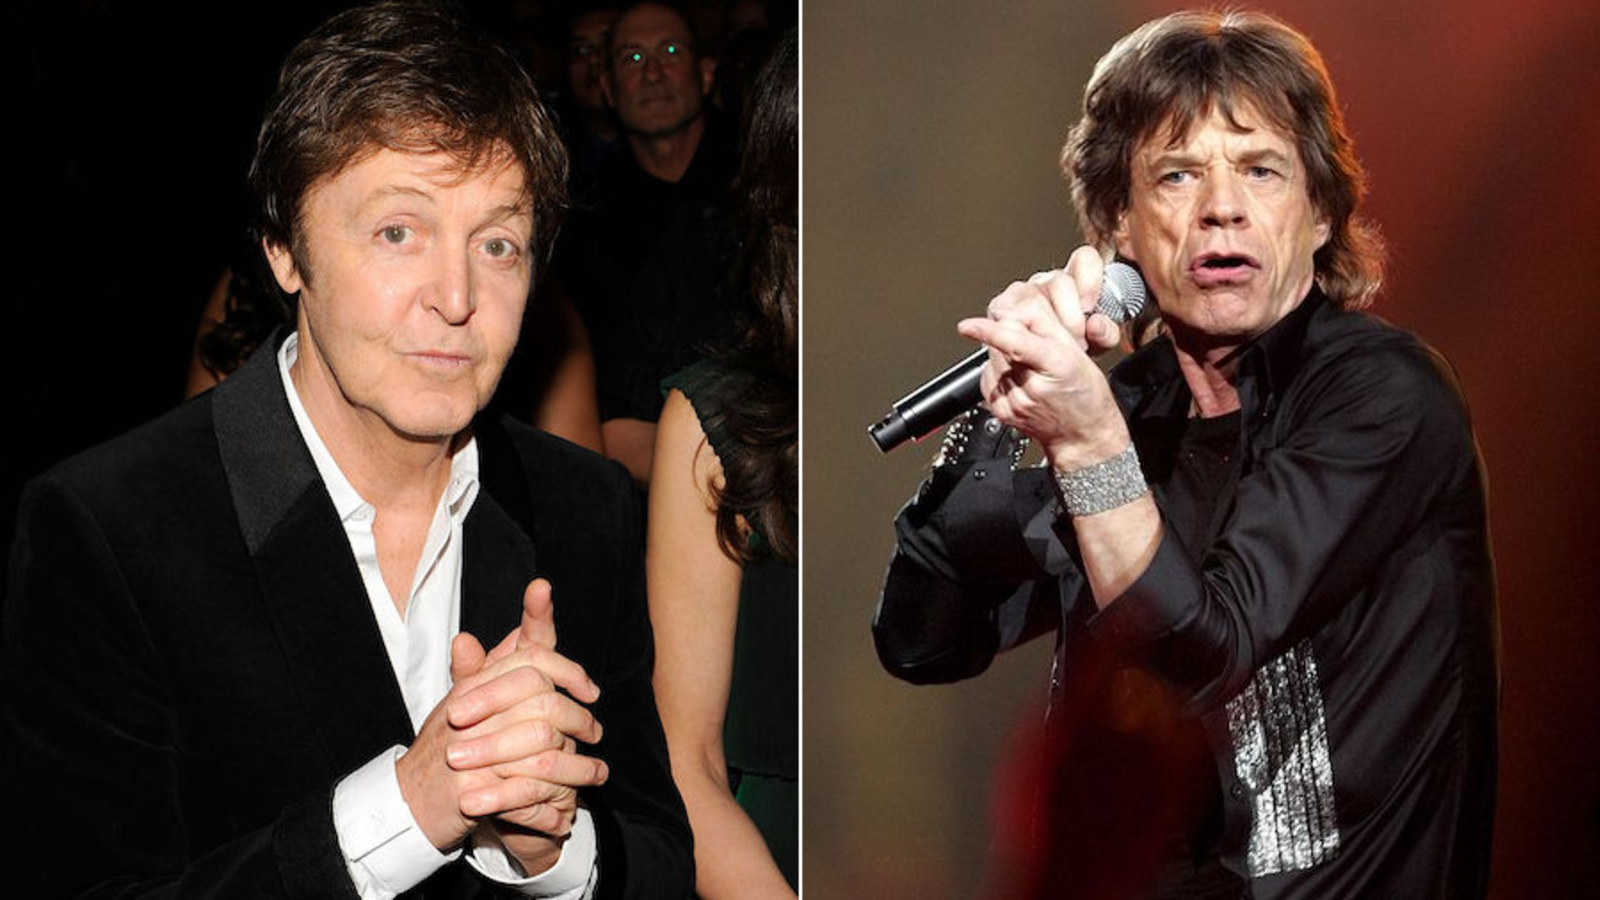 Mick Jagger Responds To Paul McCartney's Rolling Stones Comments